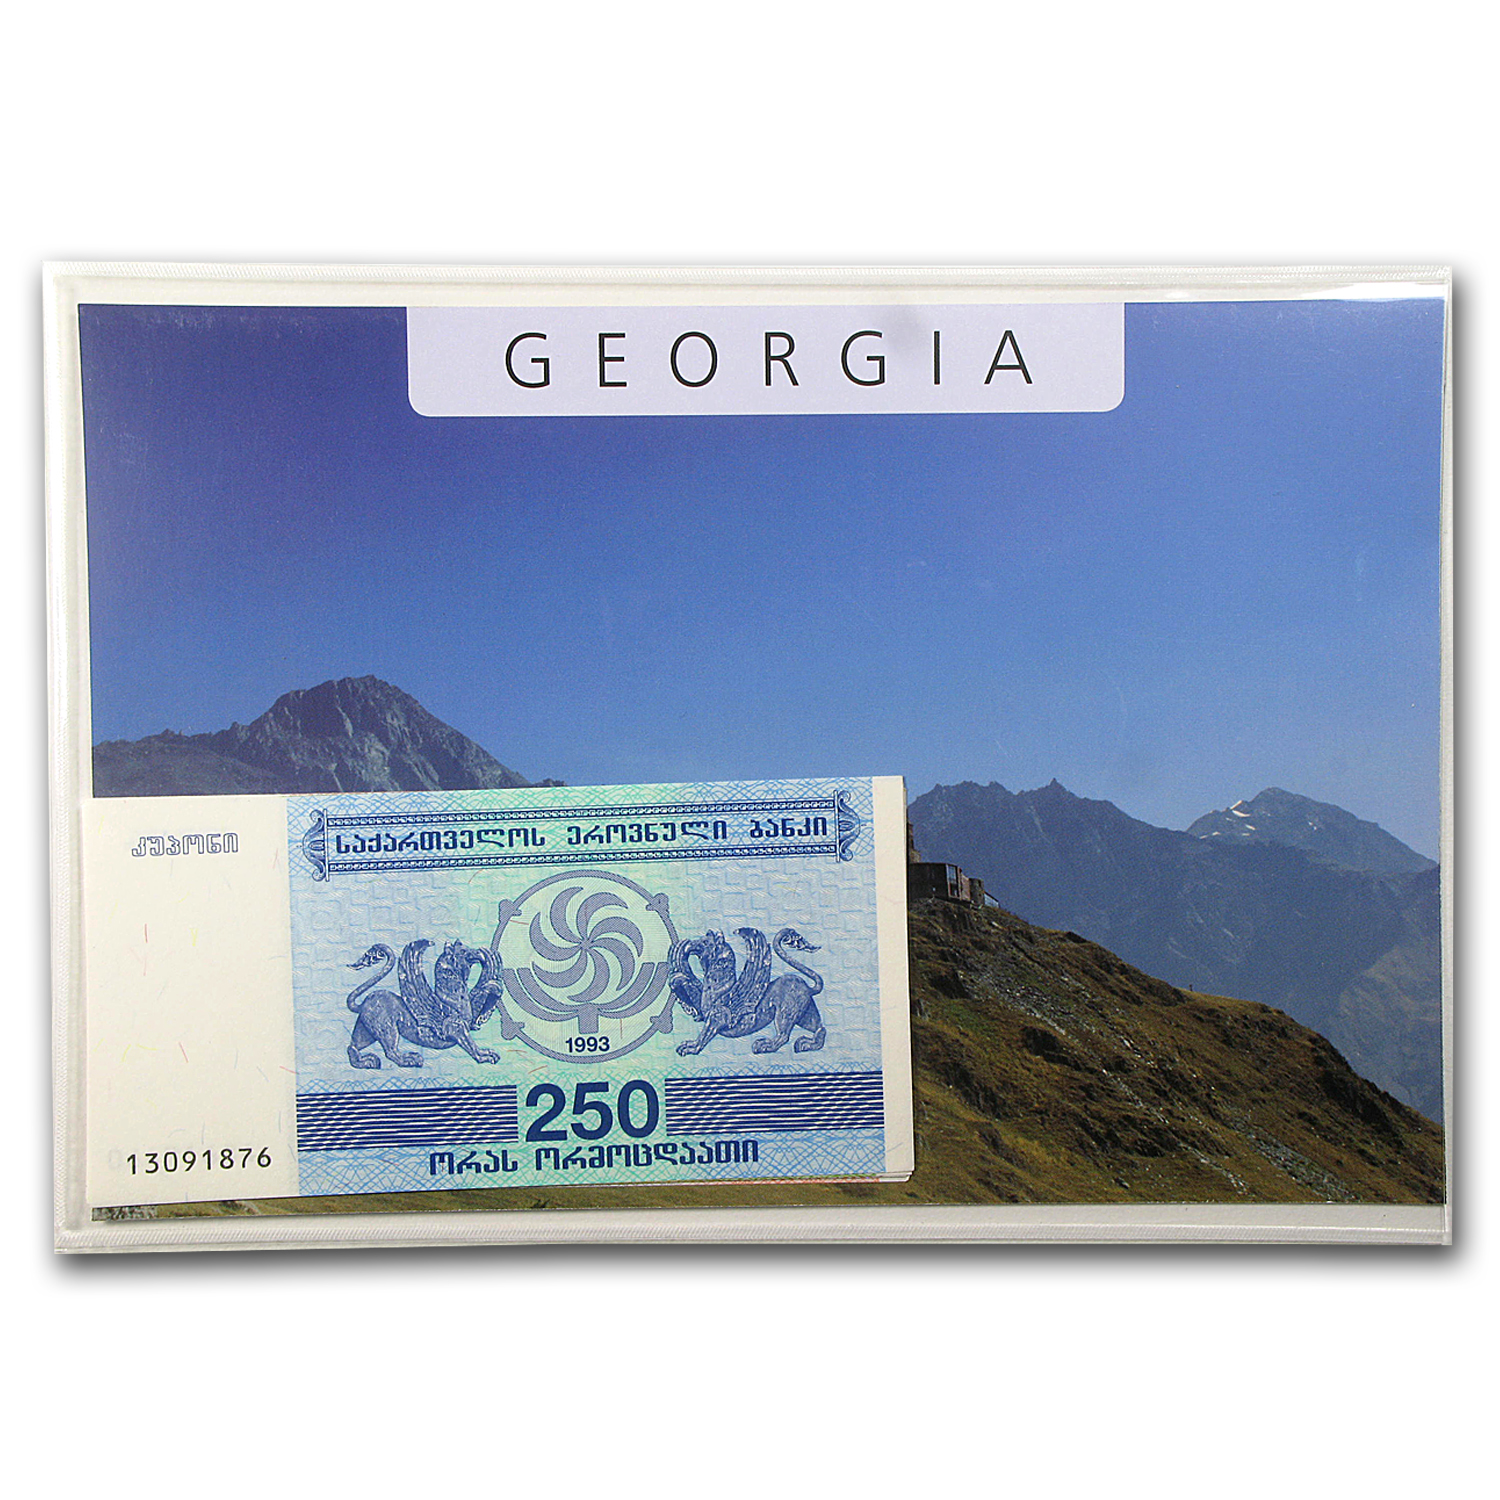 1993-1994 Georgia 25-30000 Laris Banknote Set Unc